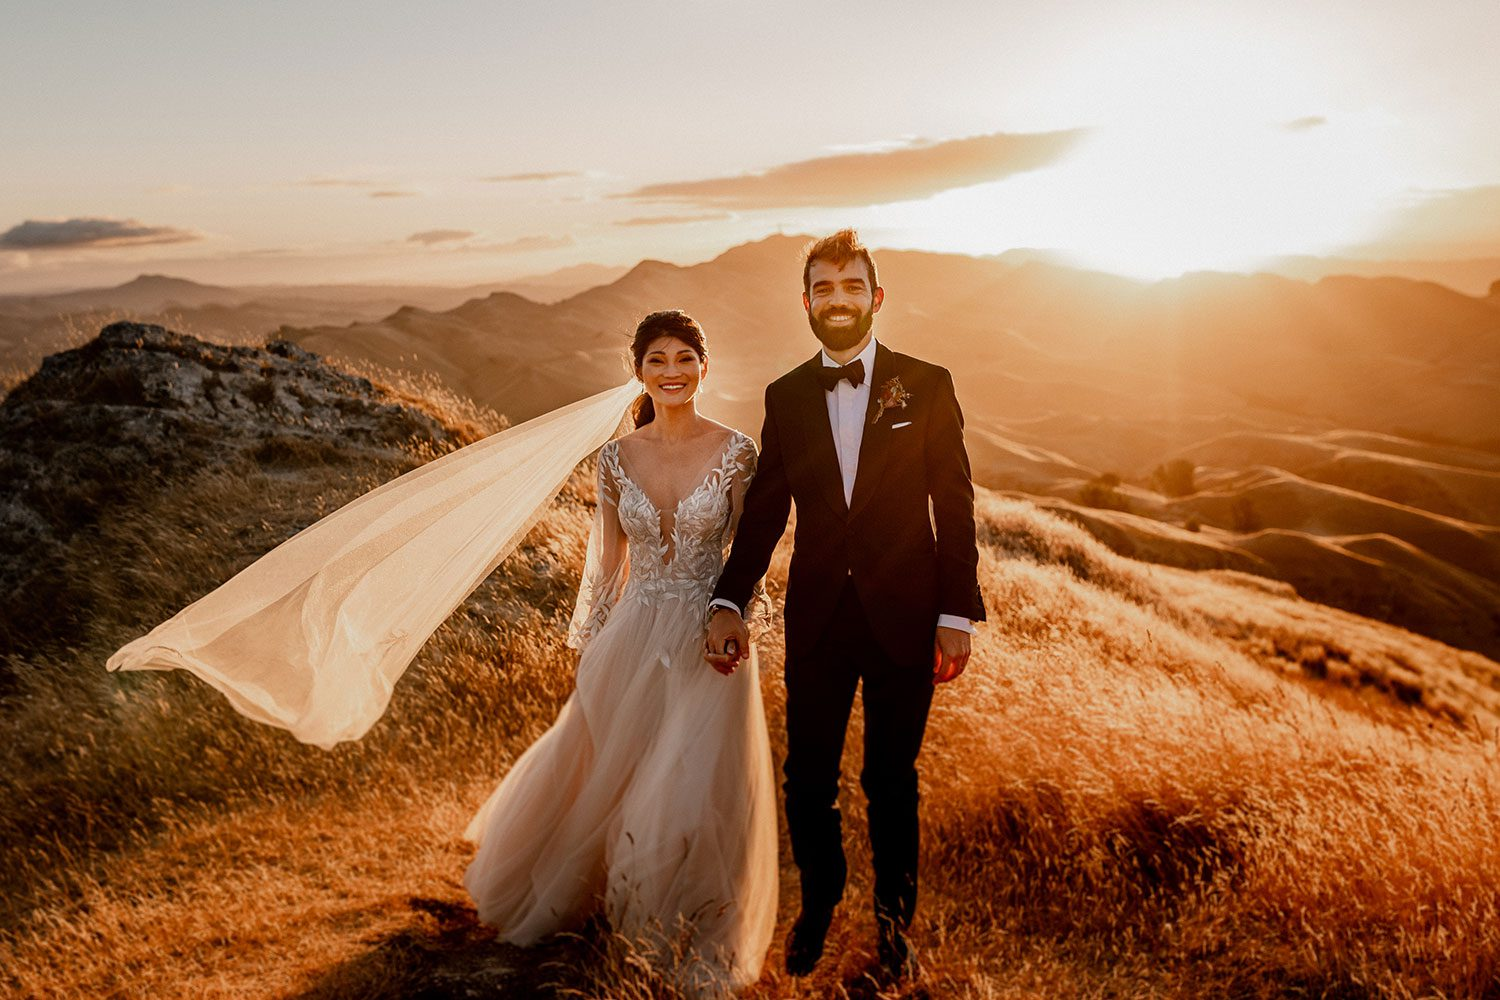 Bride wearing bespoke designer wedding dress by Vinka Bridal Boutique NZ, adorned with delicate applique lace and puffed sleeves - sunset holding hands